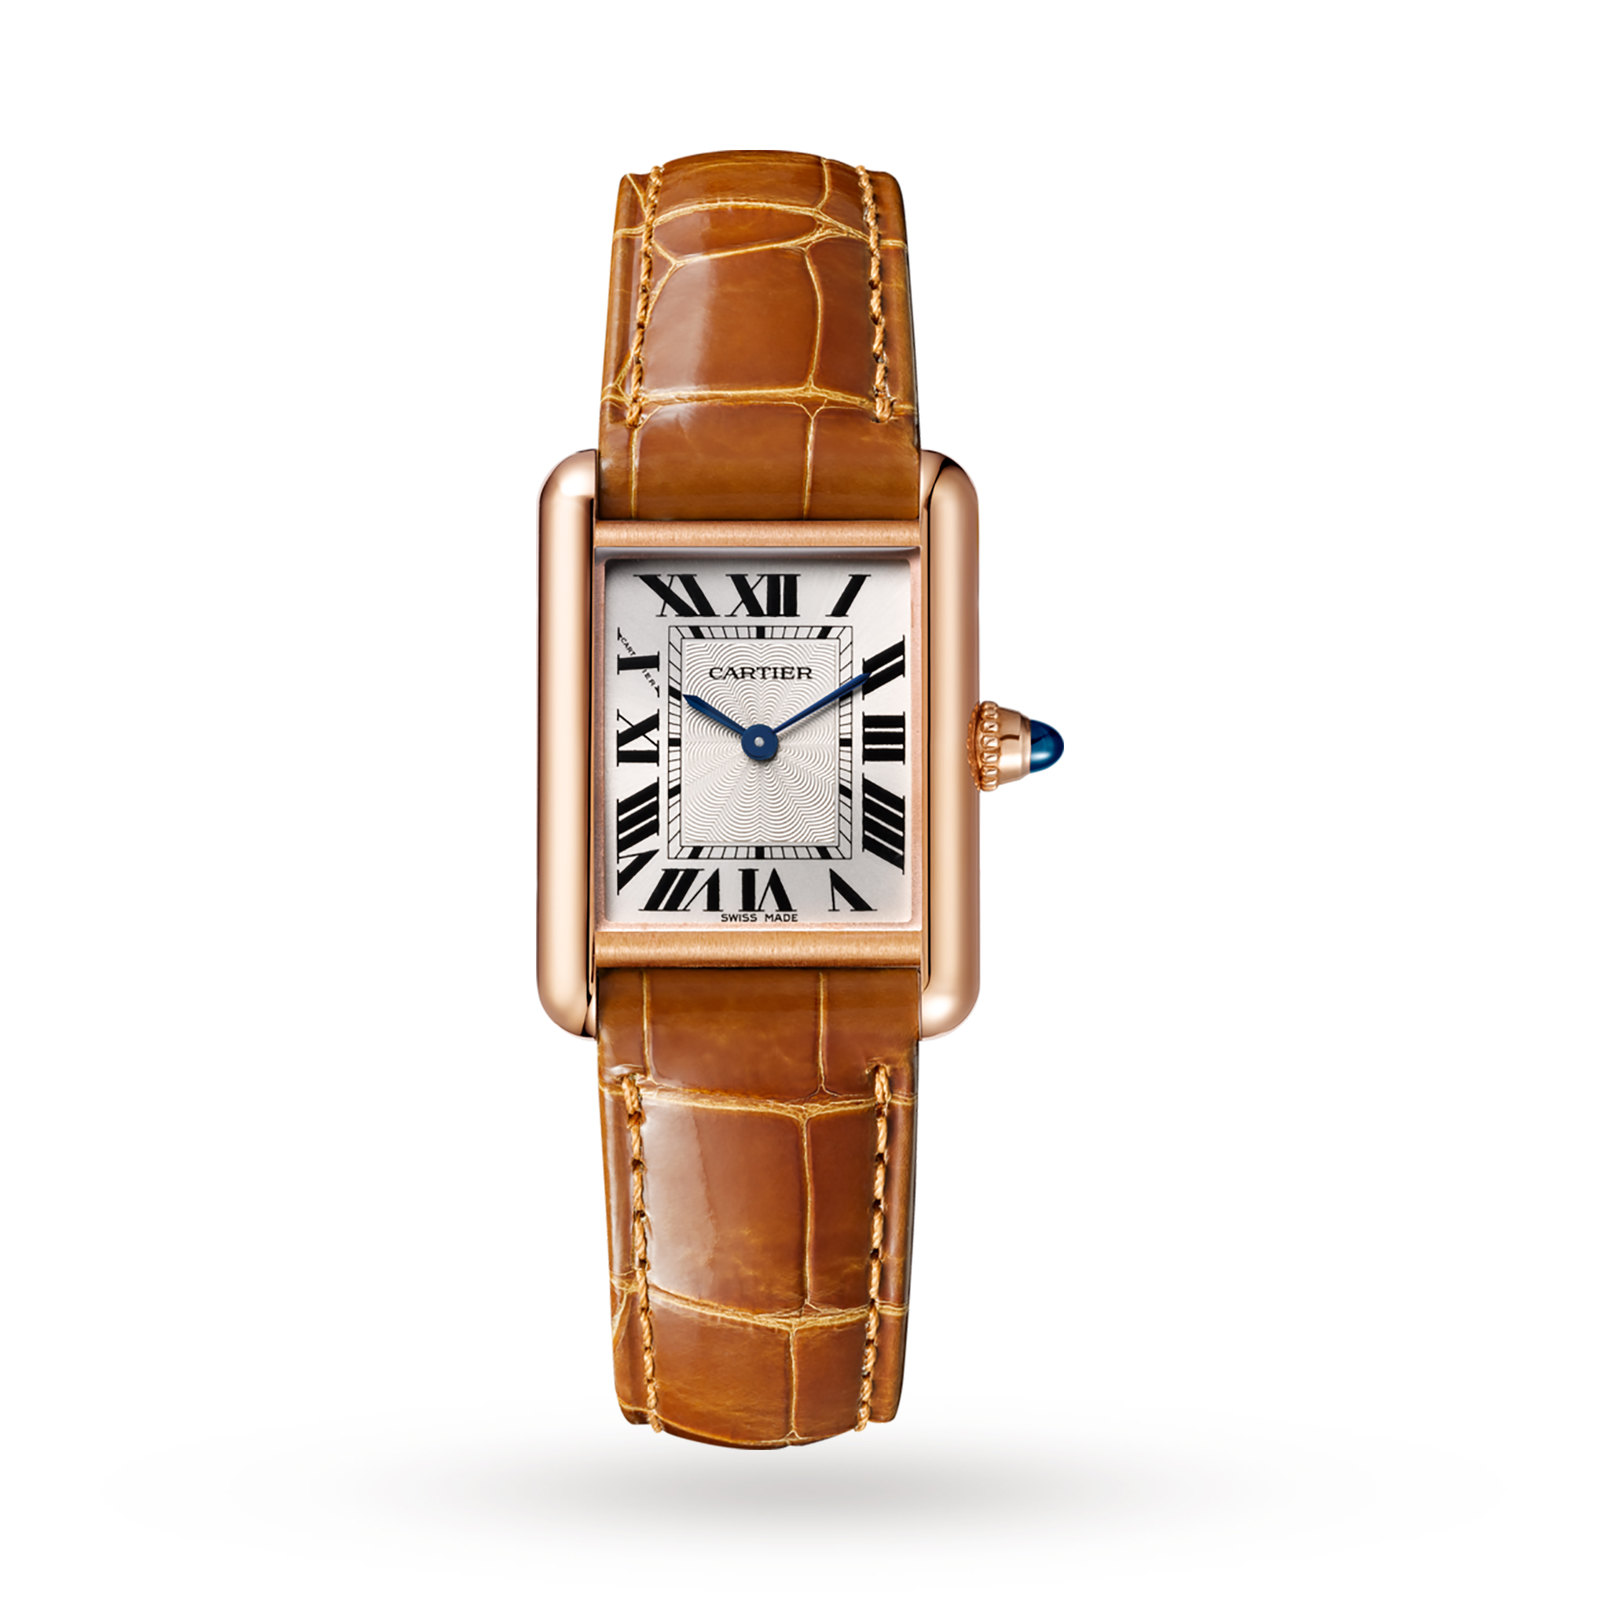 Cartier Tank Louis Cartier watch, Small model